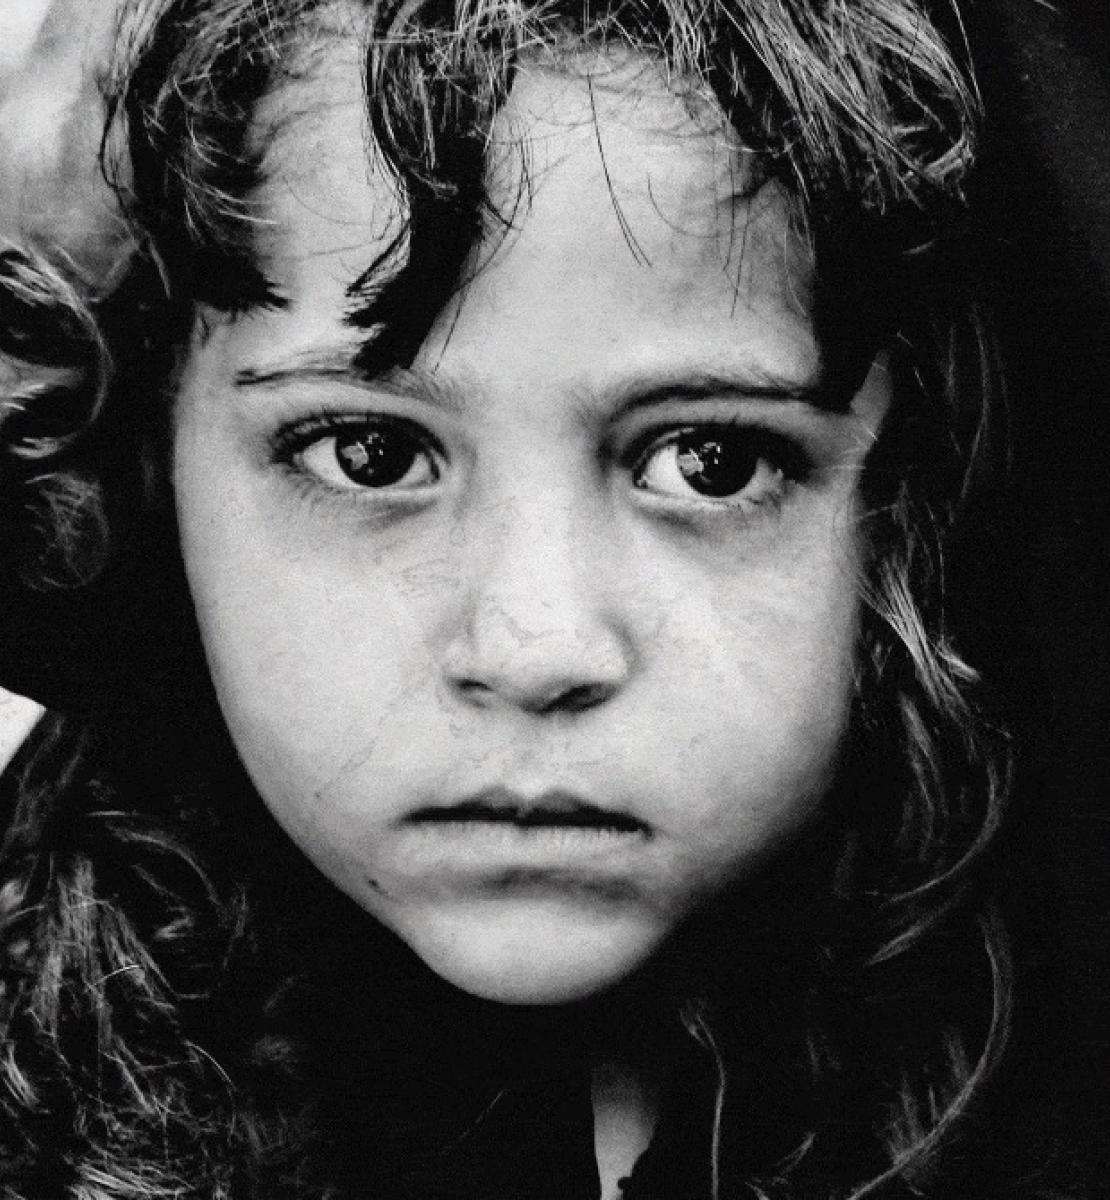 Close up black and white image of a little Yemeni girl.